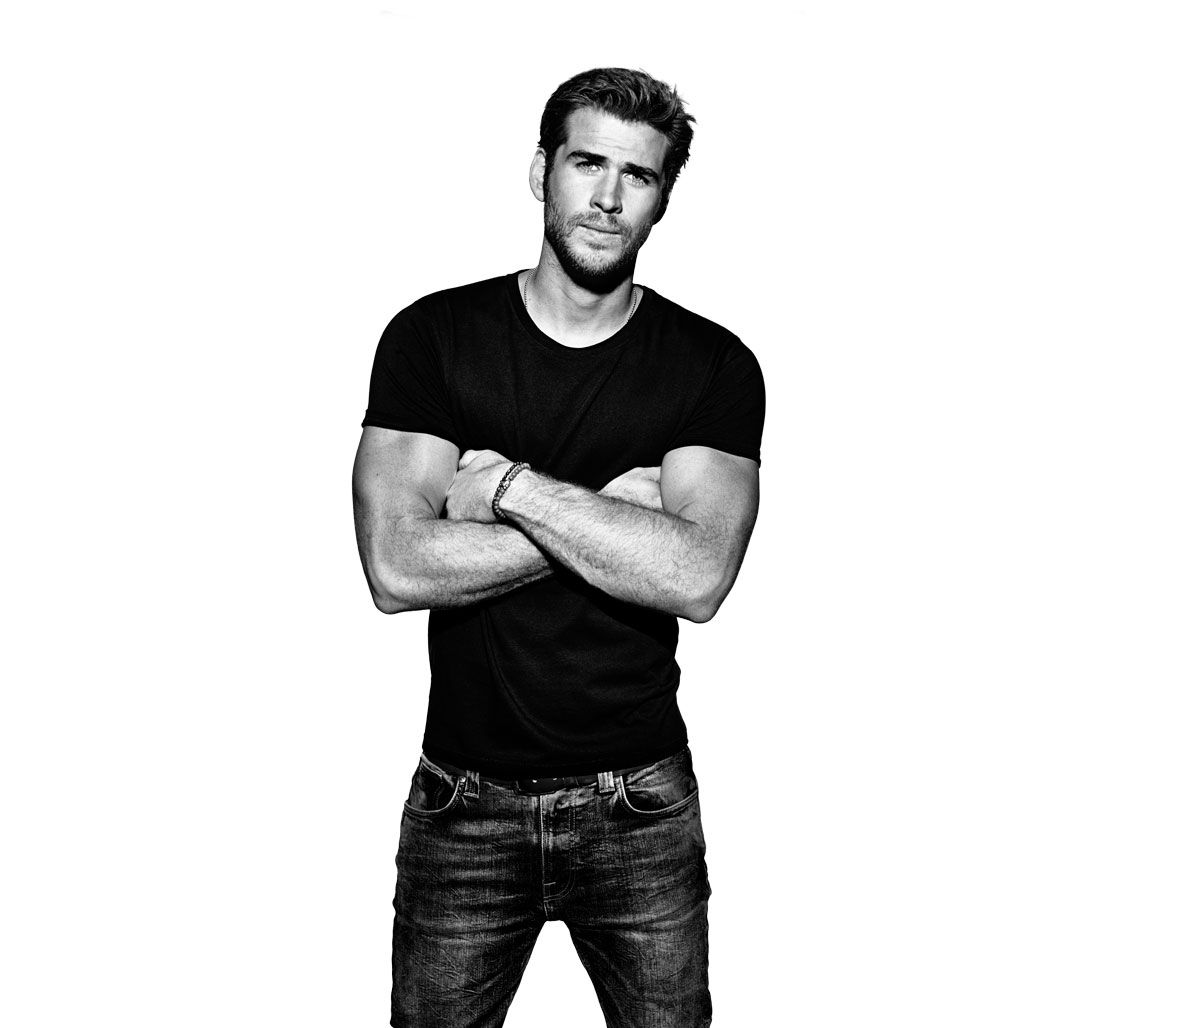 Liam Hemsworth: The actor, surfer, environmentalist, and hardcore  pullup-and-